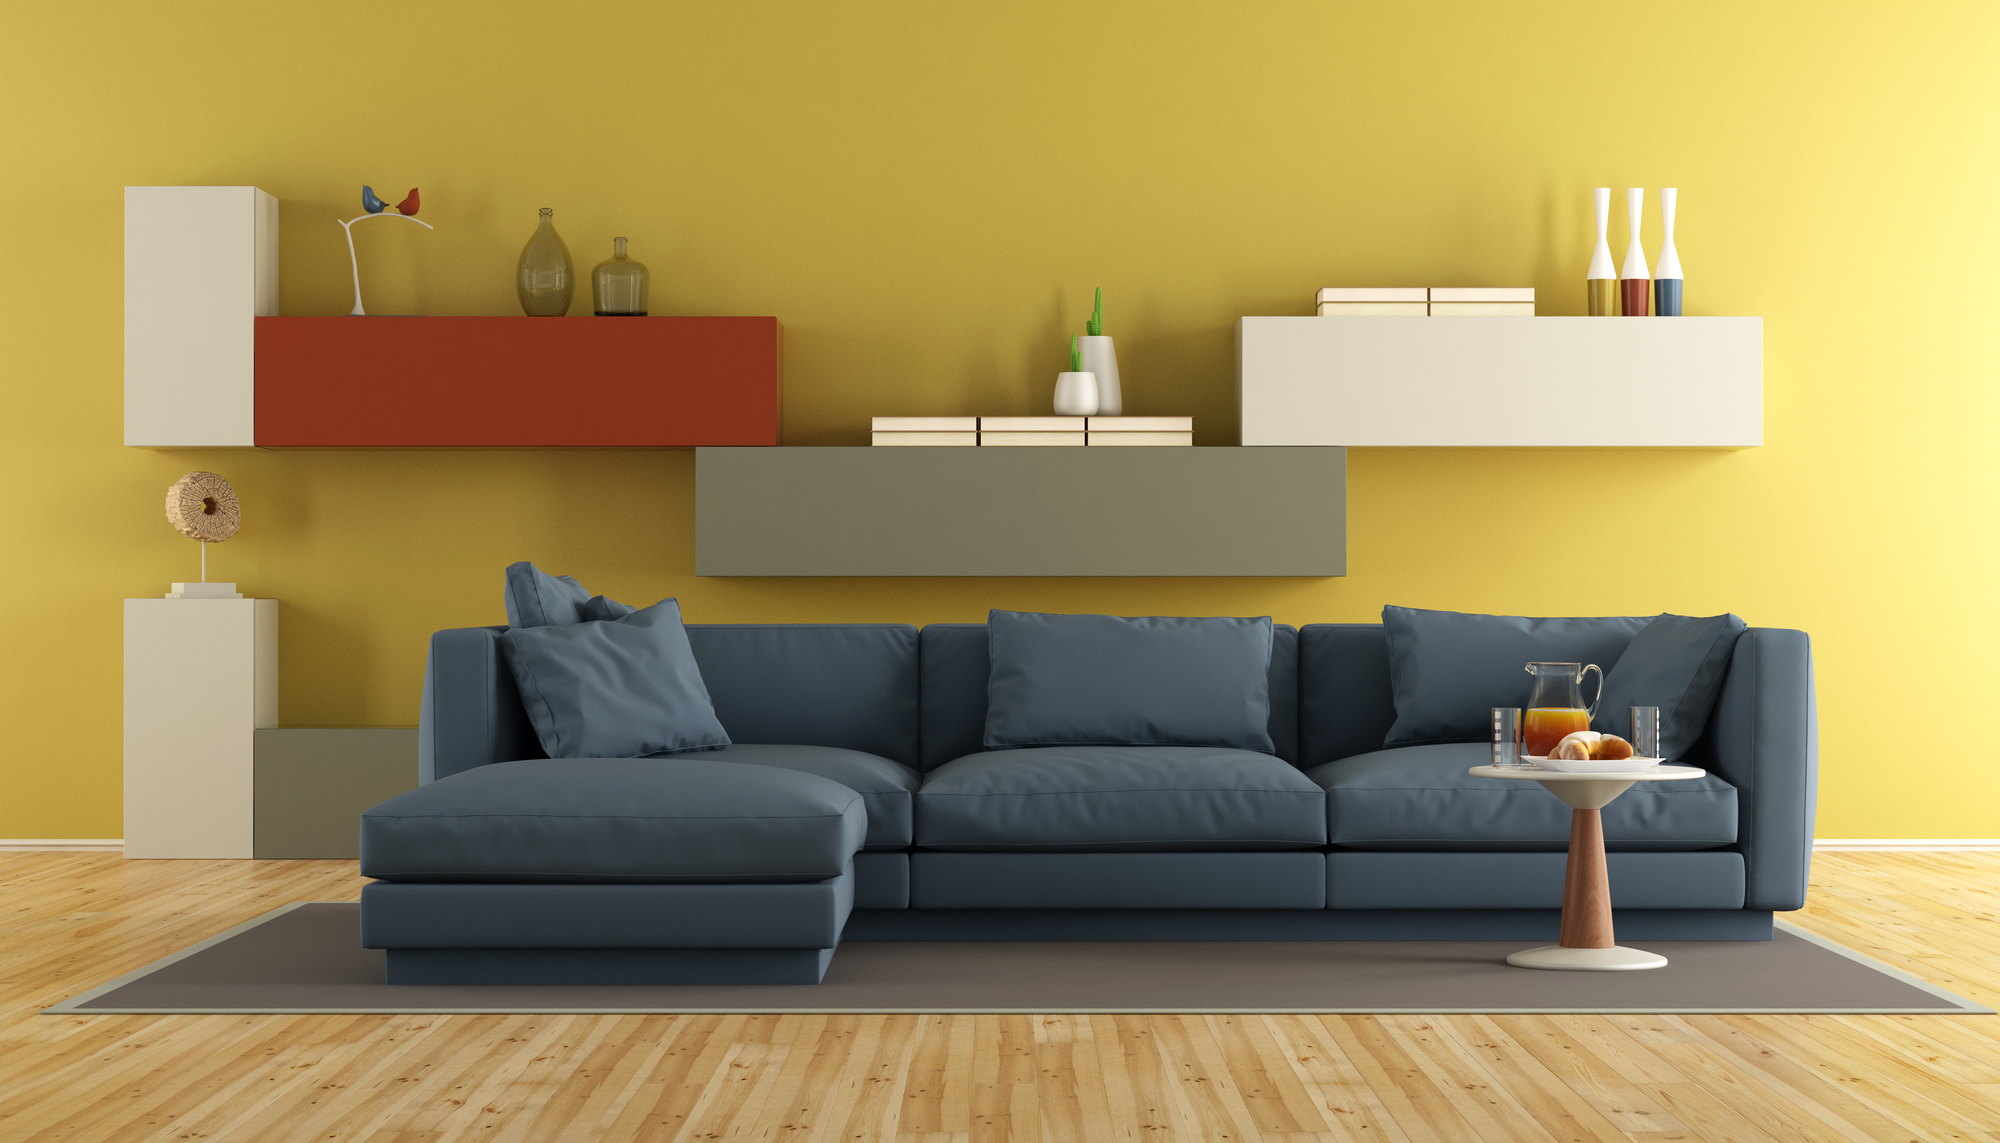 An Ideal Color for Living Room Should Blend Well